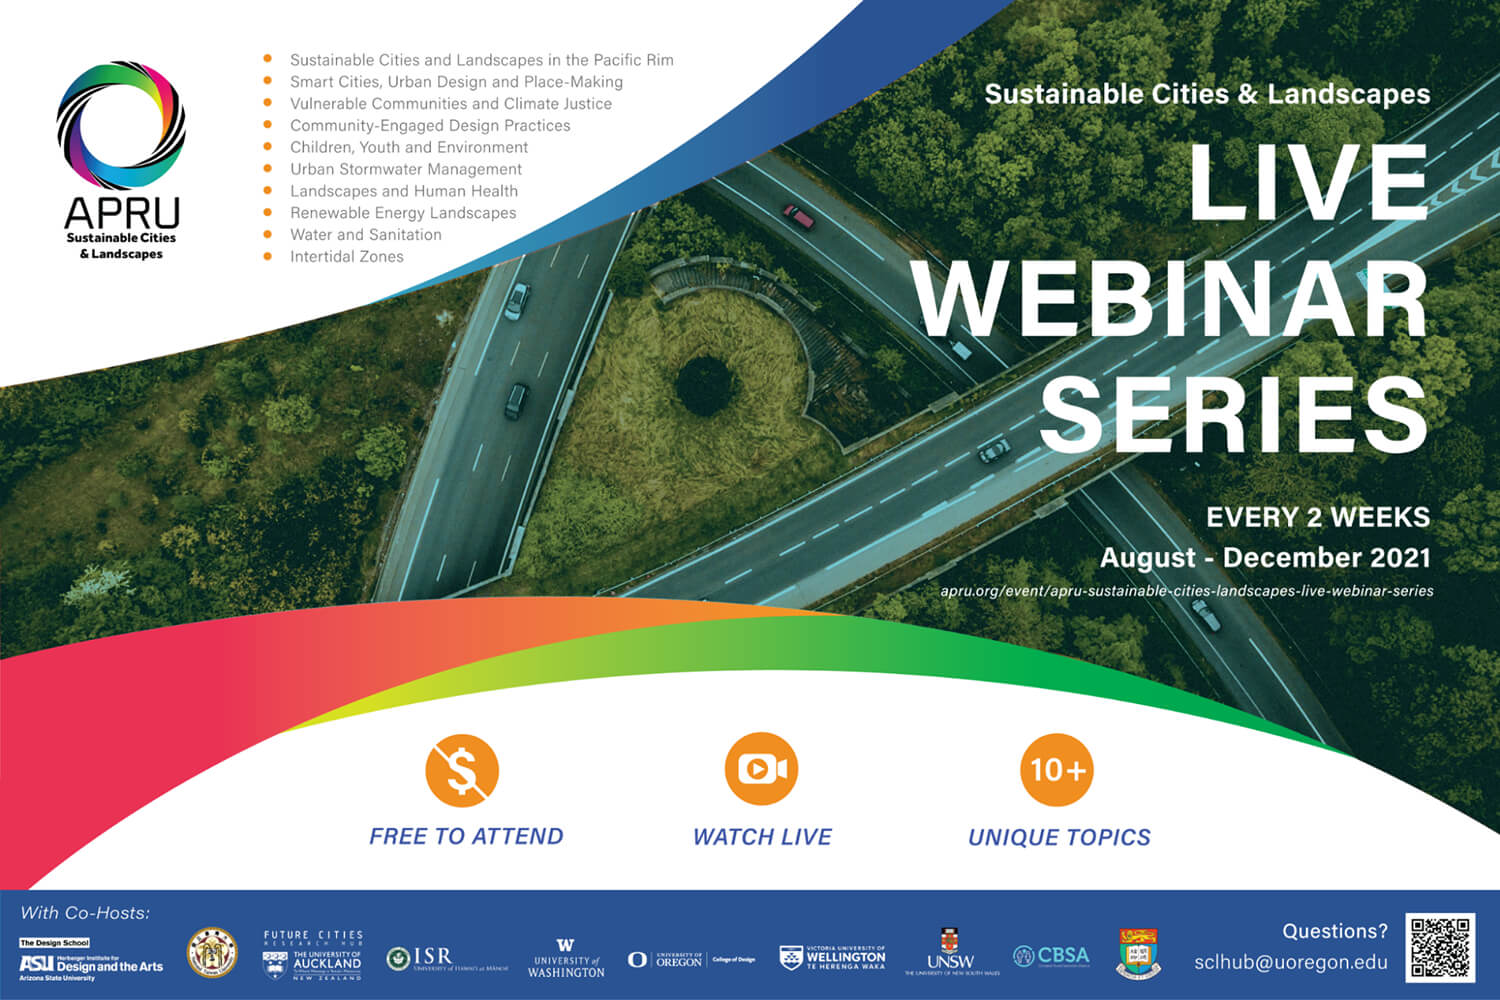 Sustainable Cities & Landscapes - Live Seminar Series - every 2 weeks from August to December 2021